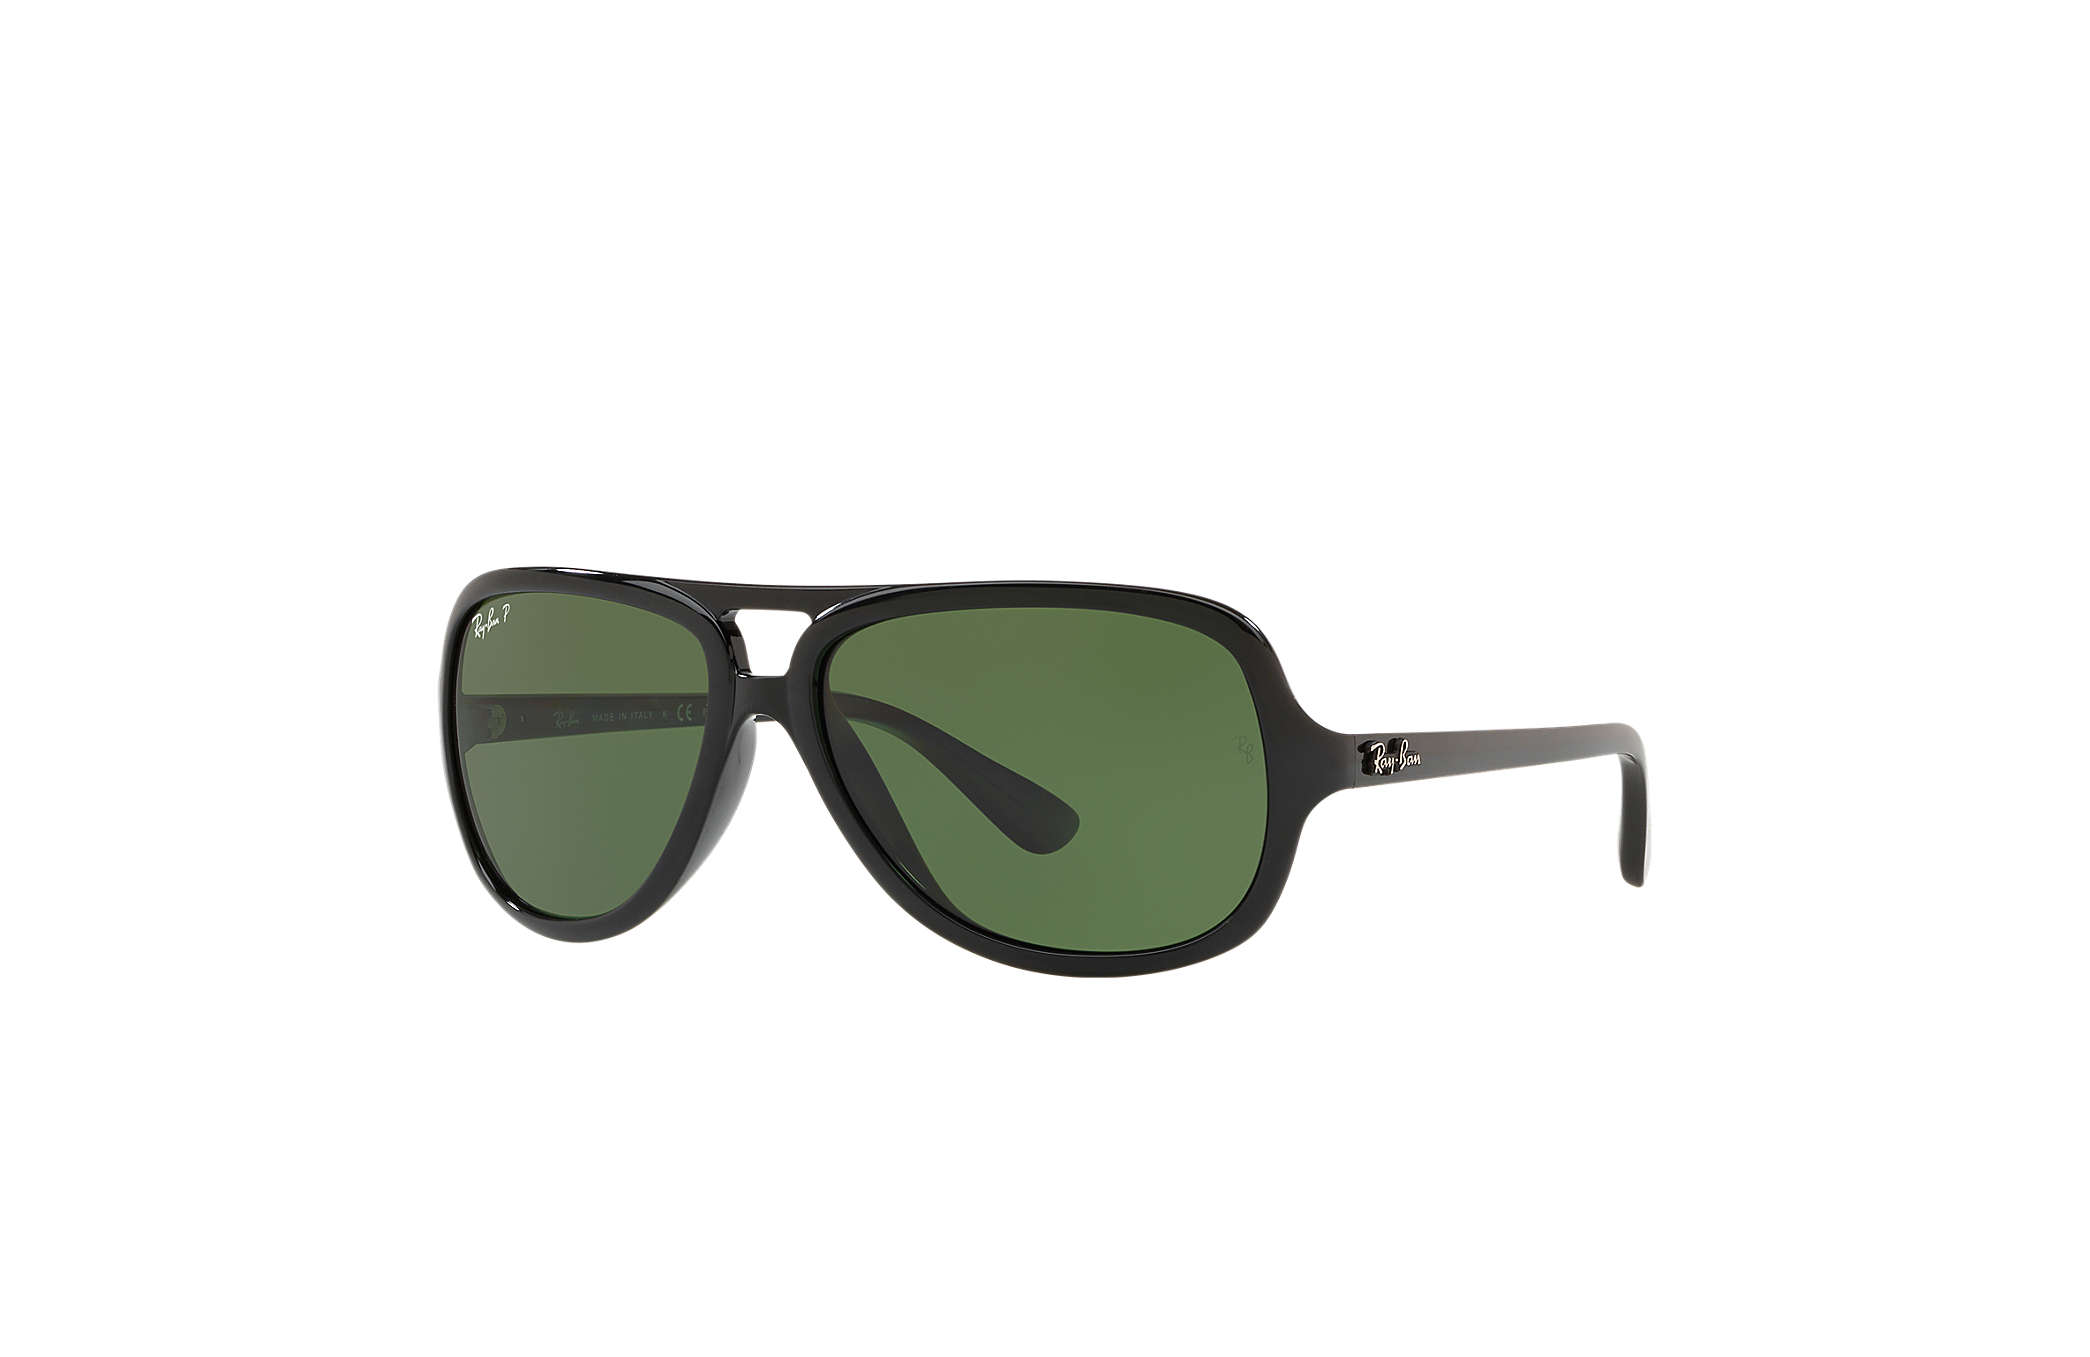 01cb77a761 ... coupon code for ray ban 0rb4162 rb4162 black sun a3562 d7b52